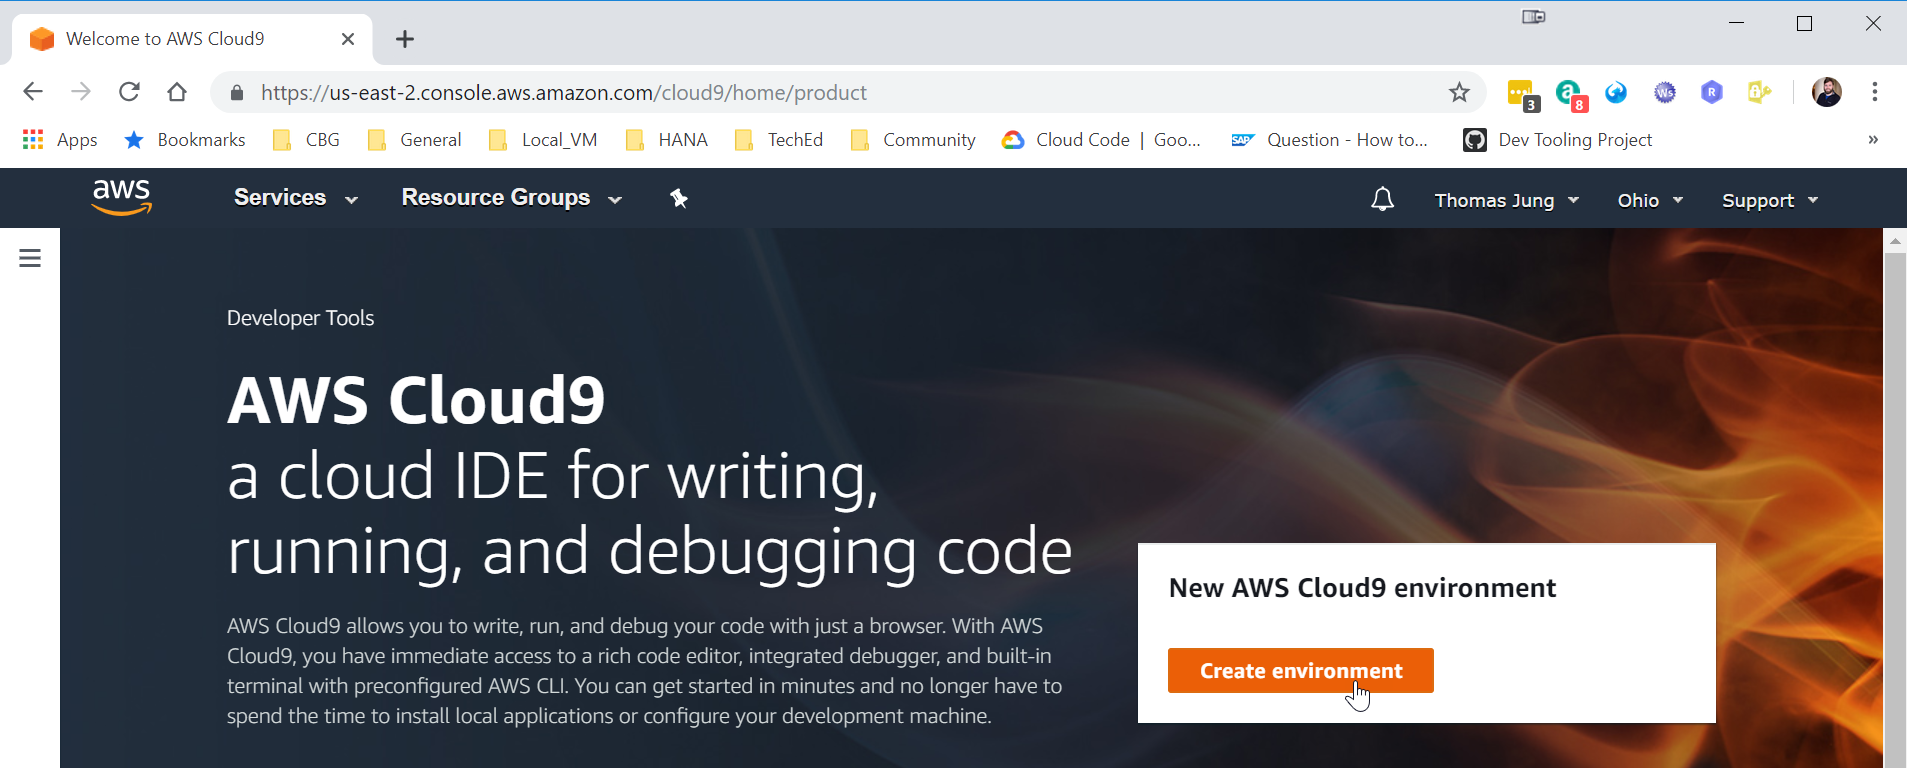 SAP Development Using Amazon Cloud9 | SAP Blogs